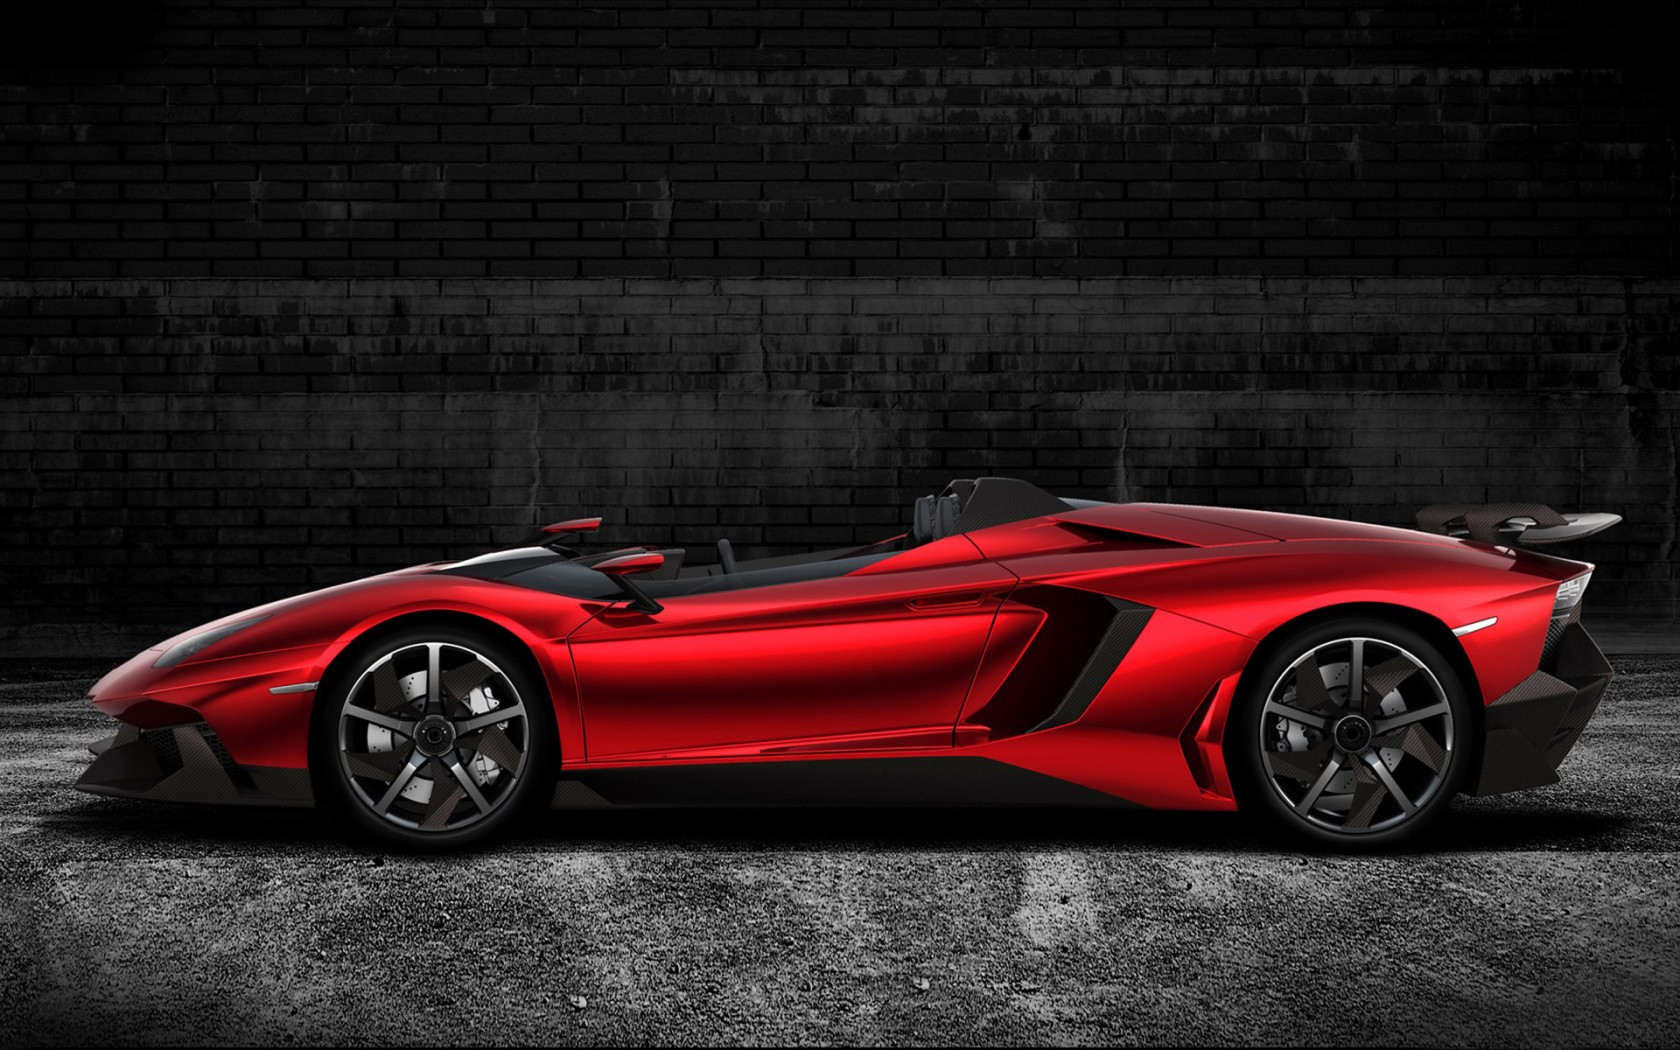 2012 Lamborghini Aventador J 4 Wallpaper | HD Car Wallpapers